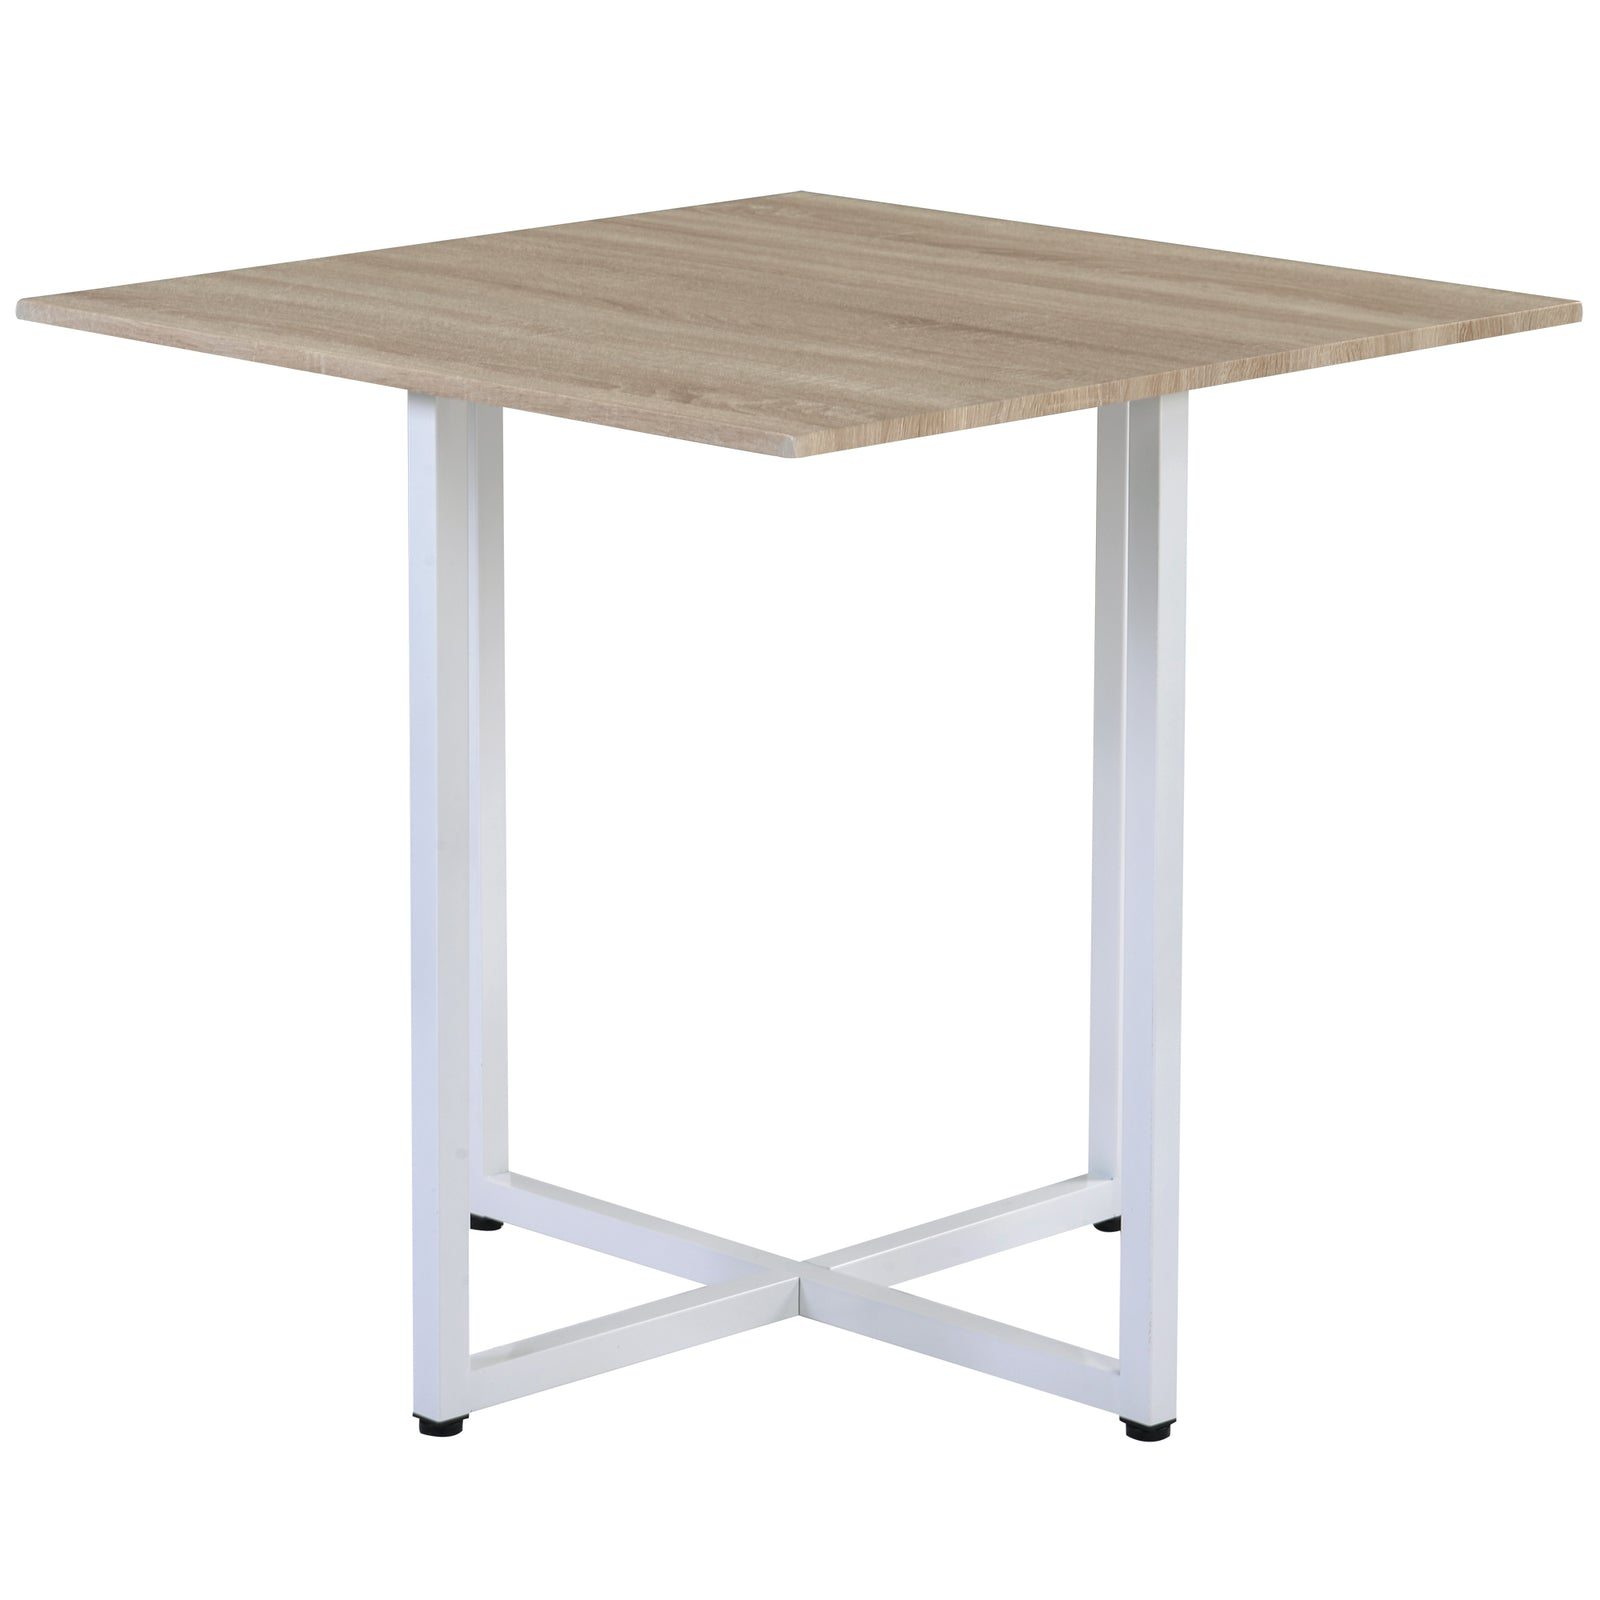 5 Counts - Dining Set Bar Table Set for 4 Kitchen/Living Room/Bar/Restaurant White - Table